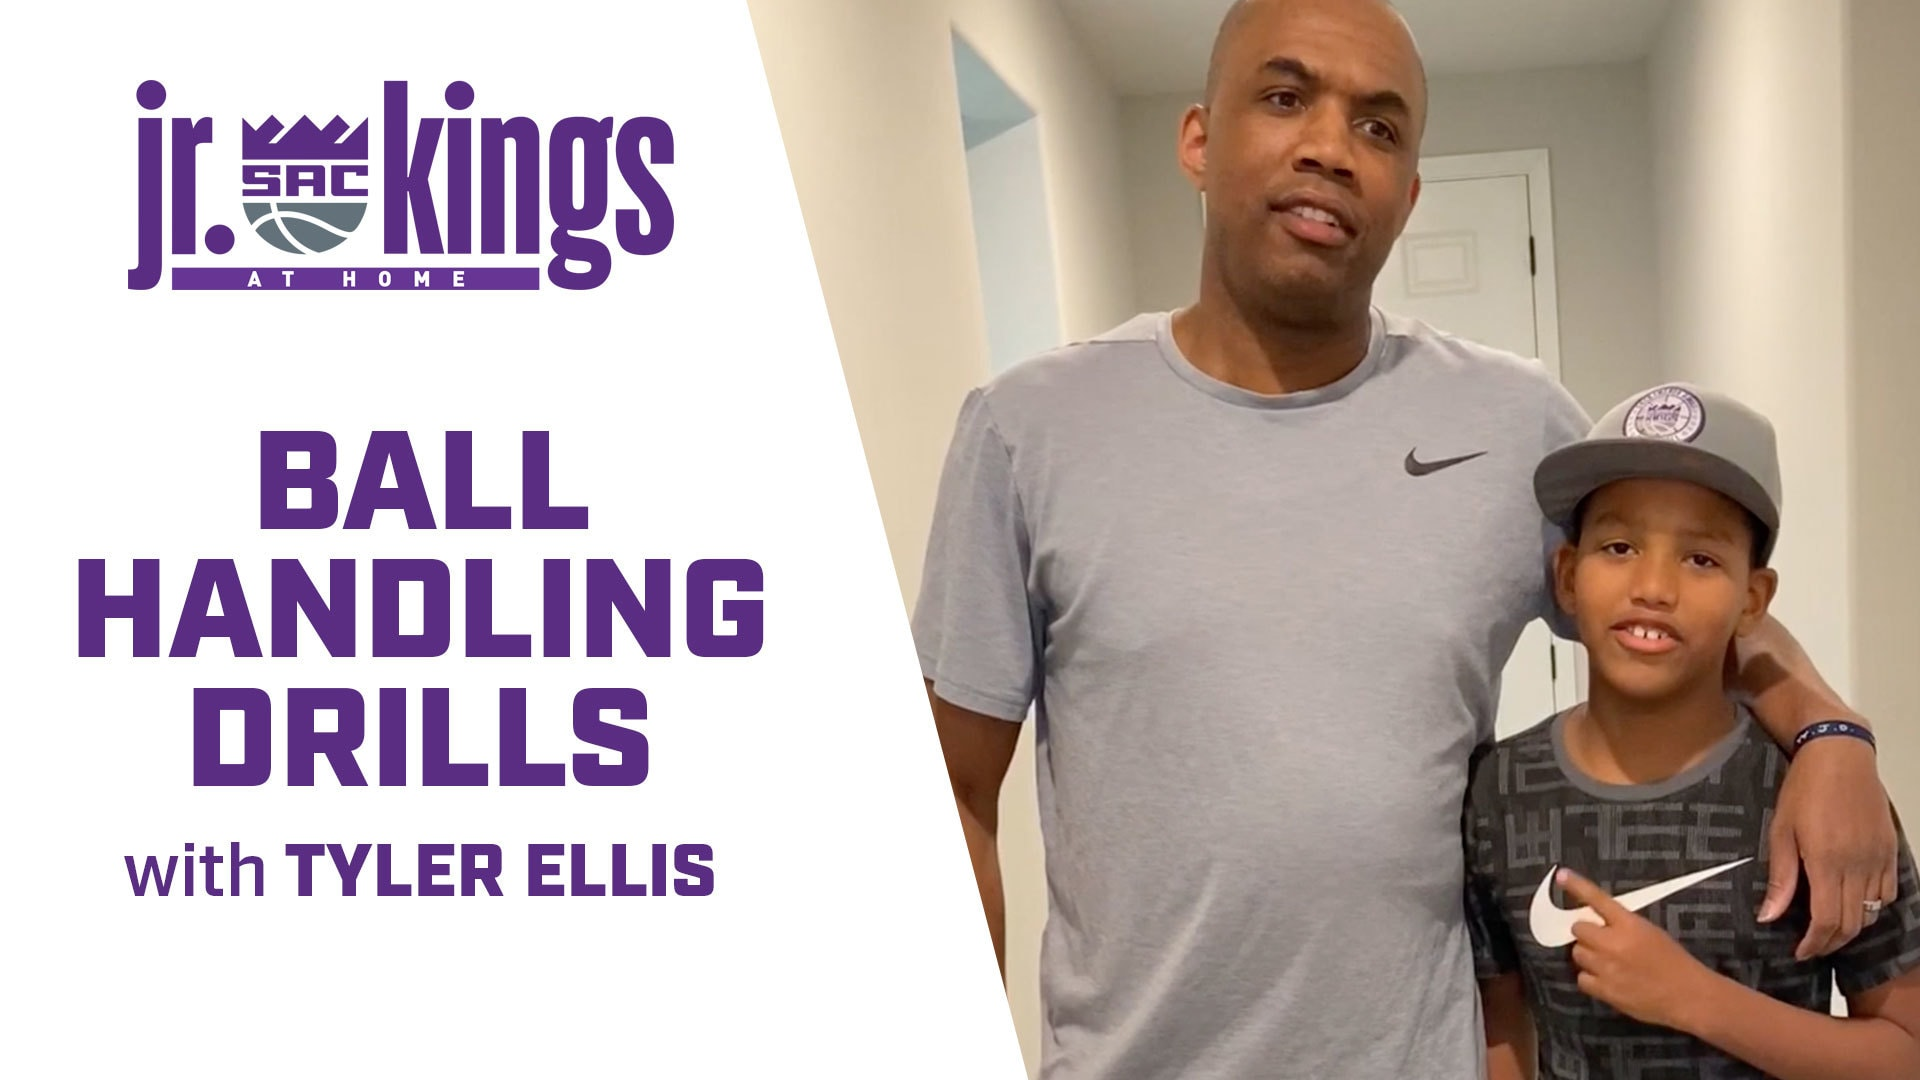 Jr. Kings at Home | Work on Your Ball Handling Skills with Tyler Ellis